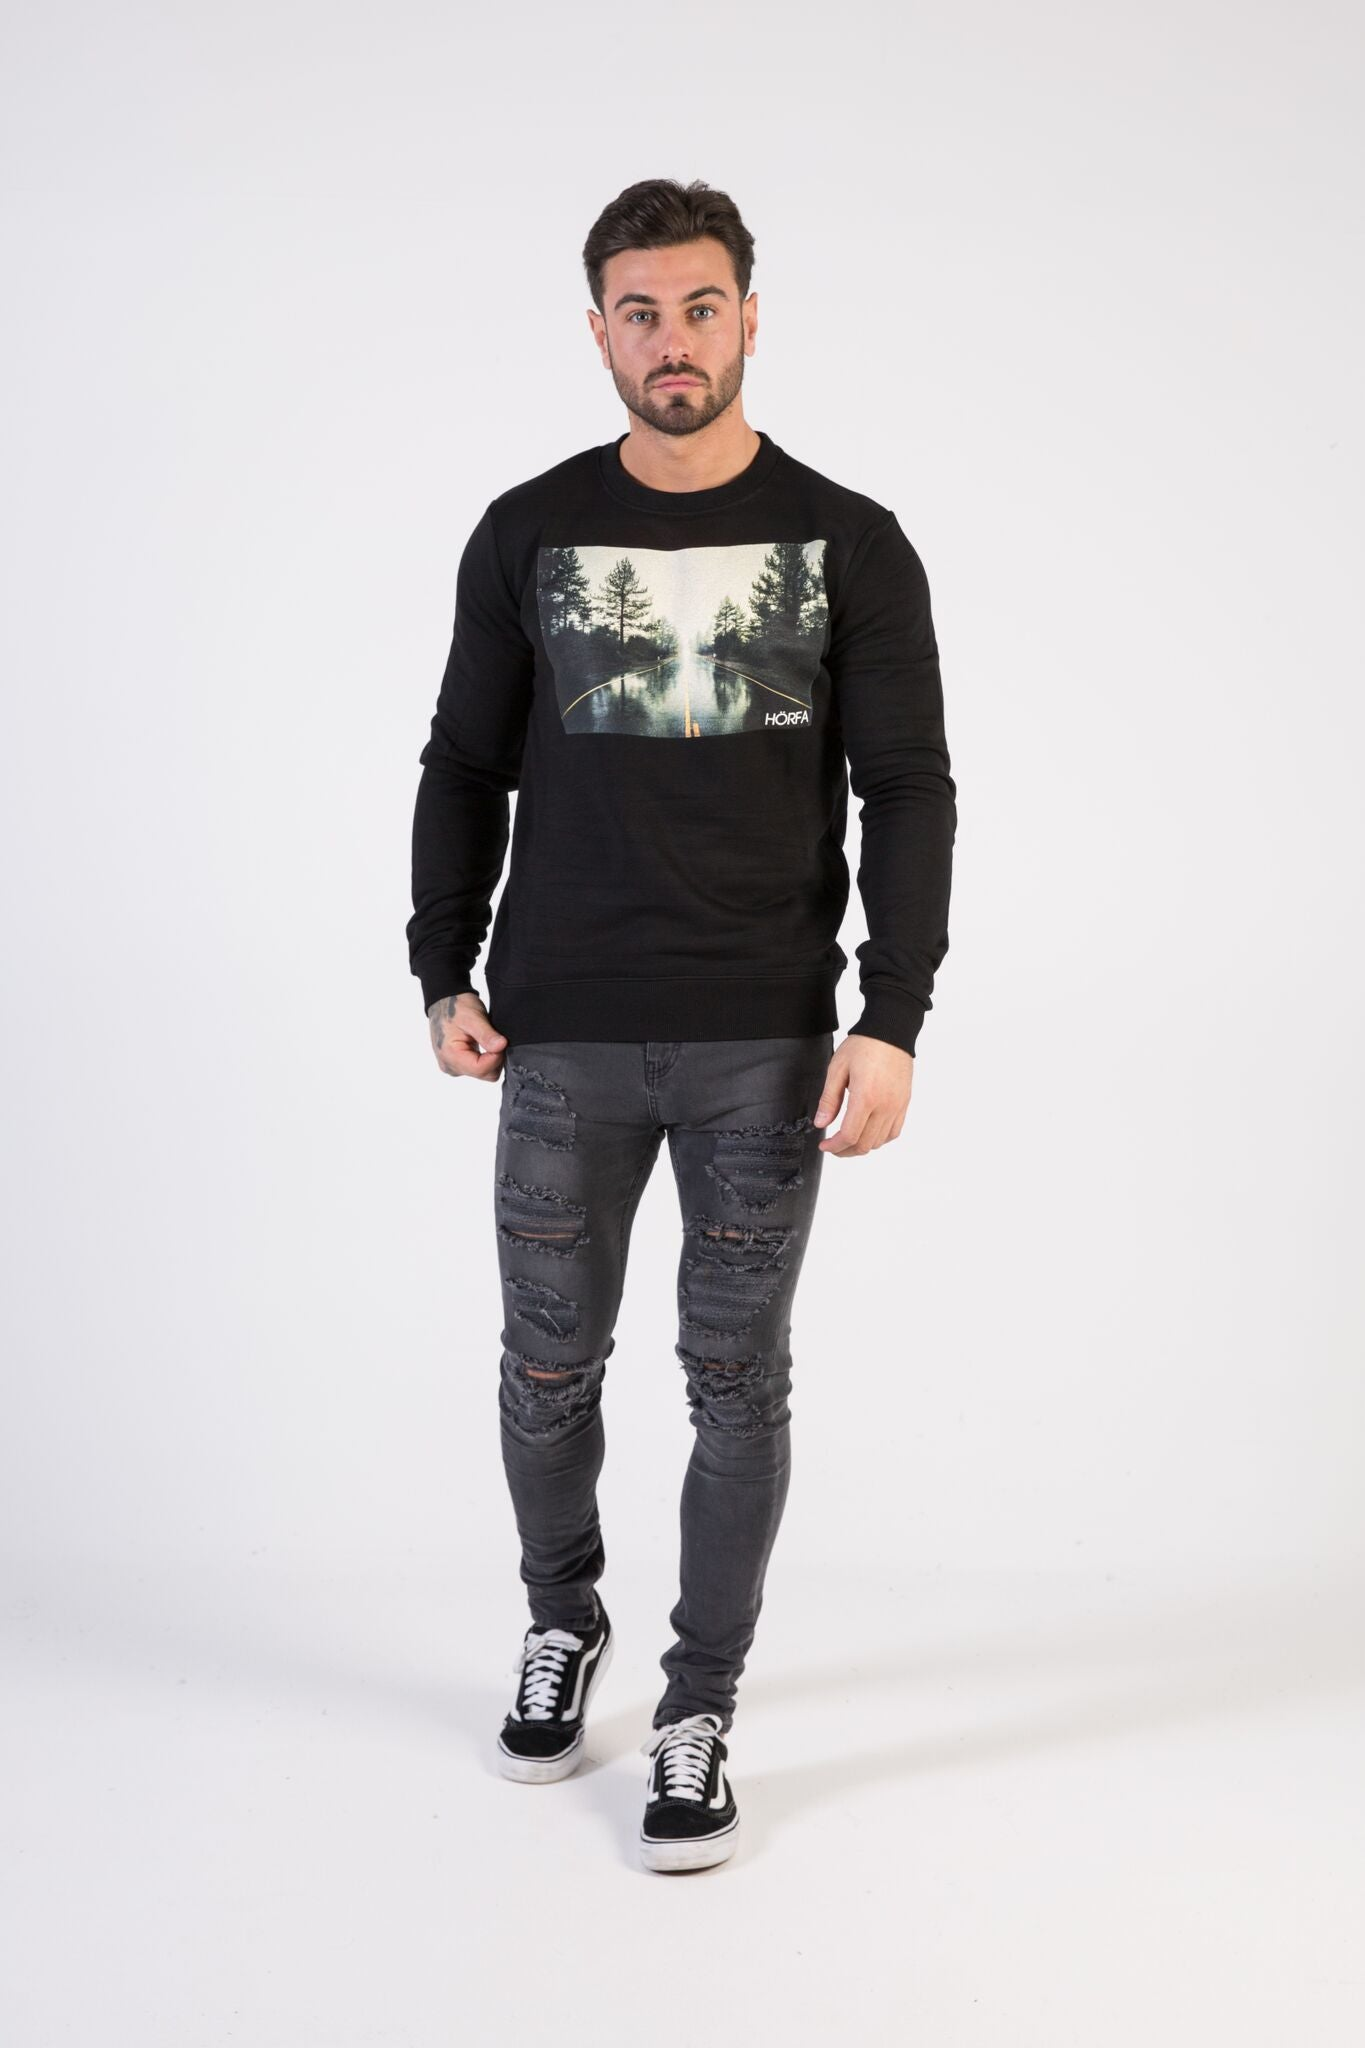 OPEN ROAD Sweatshirt - HÖRFA is a men's global fashion brand that provides products such as Fashionable Watches, Wallets, Sunglasses, Belts, Beard and Male Grooming Products